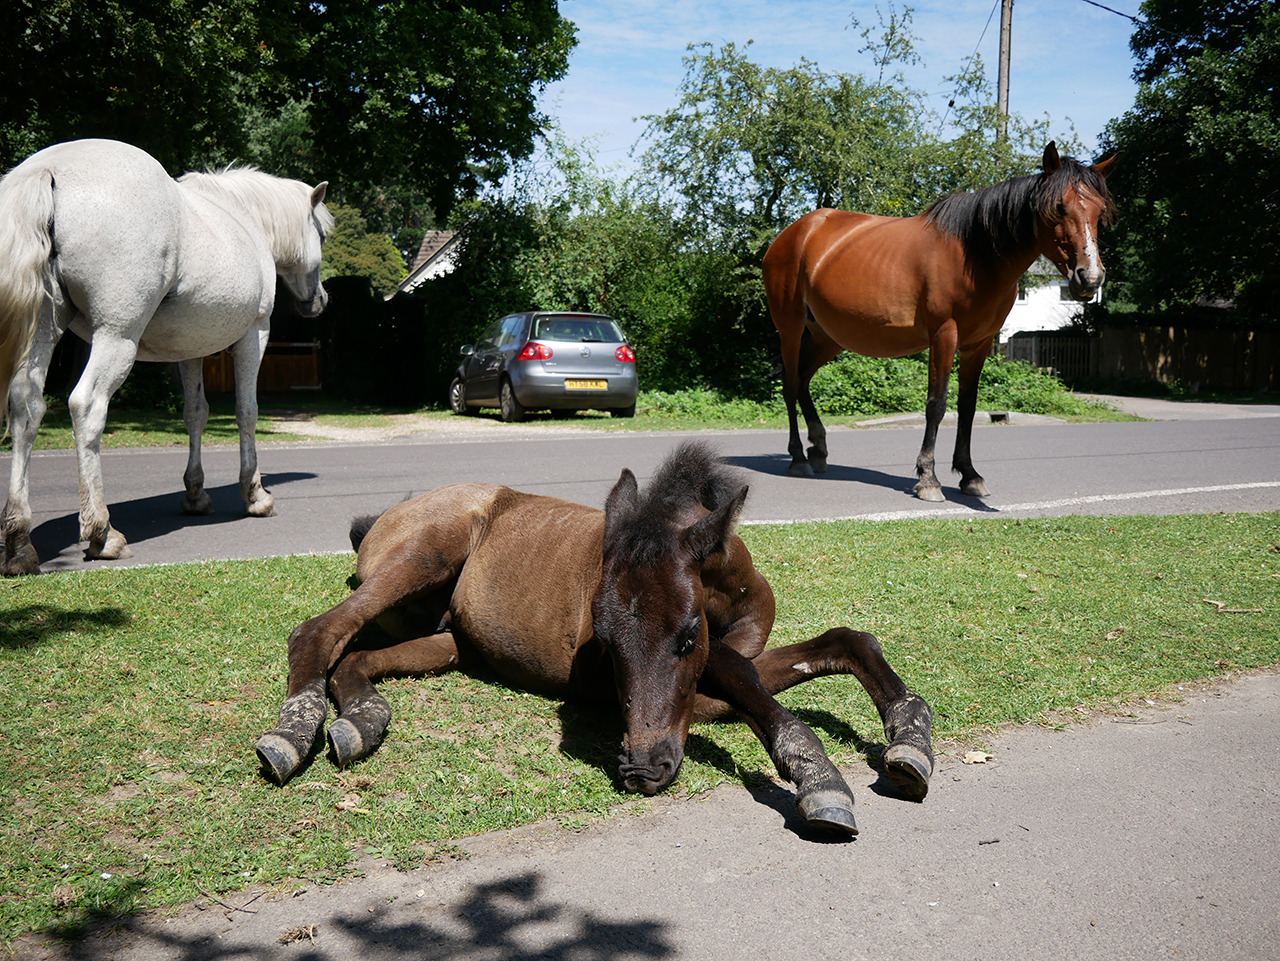 Horses in New Forest, Hampshire